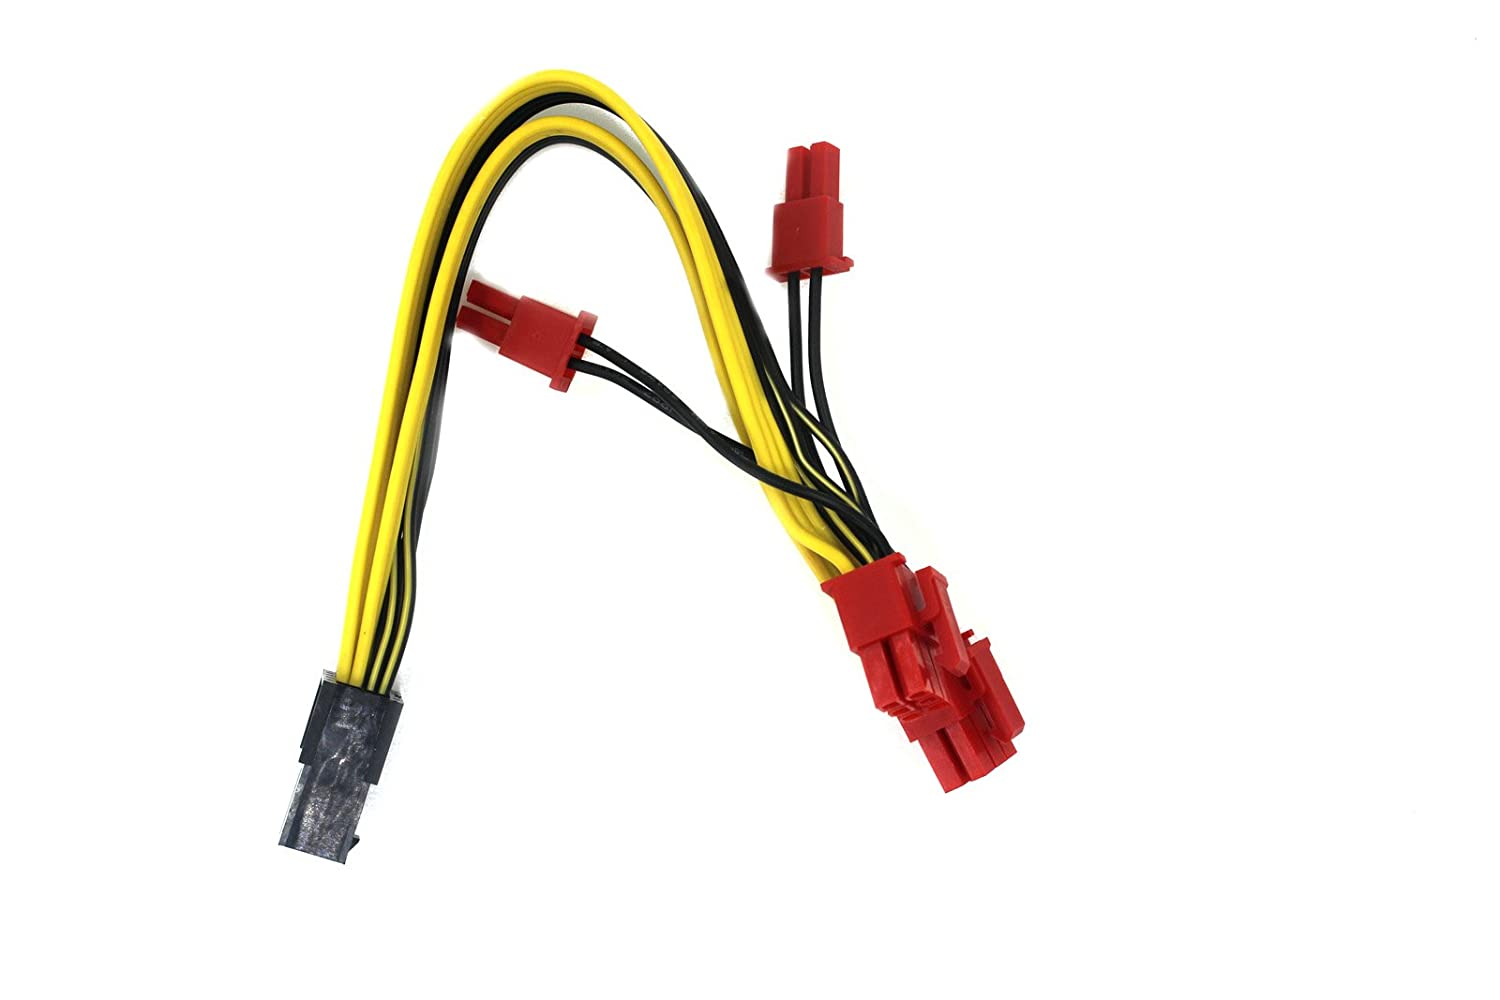 Groß 8 Awg 4 Draht Kabel Ideen - Schaltplan Serie Circuit Collection ...